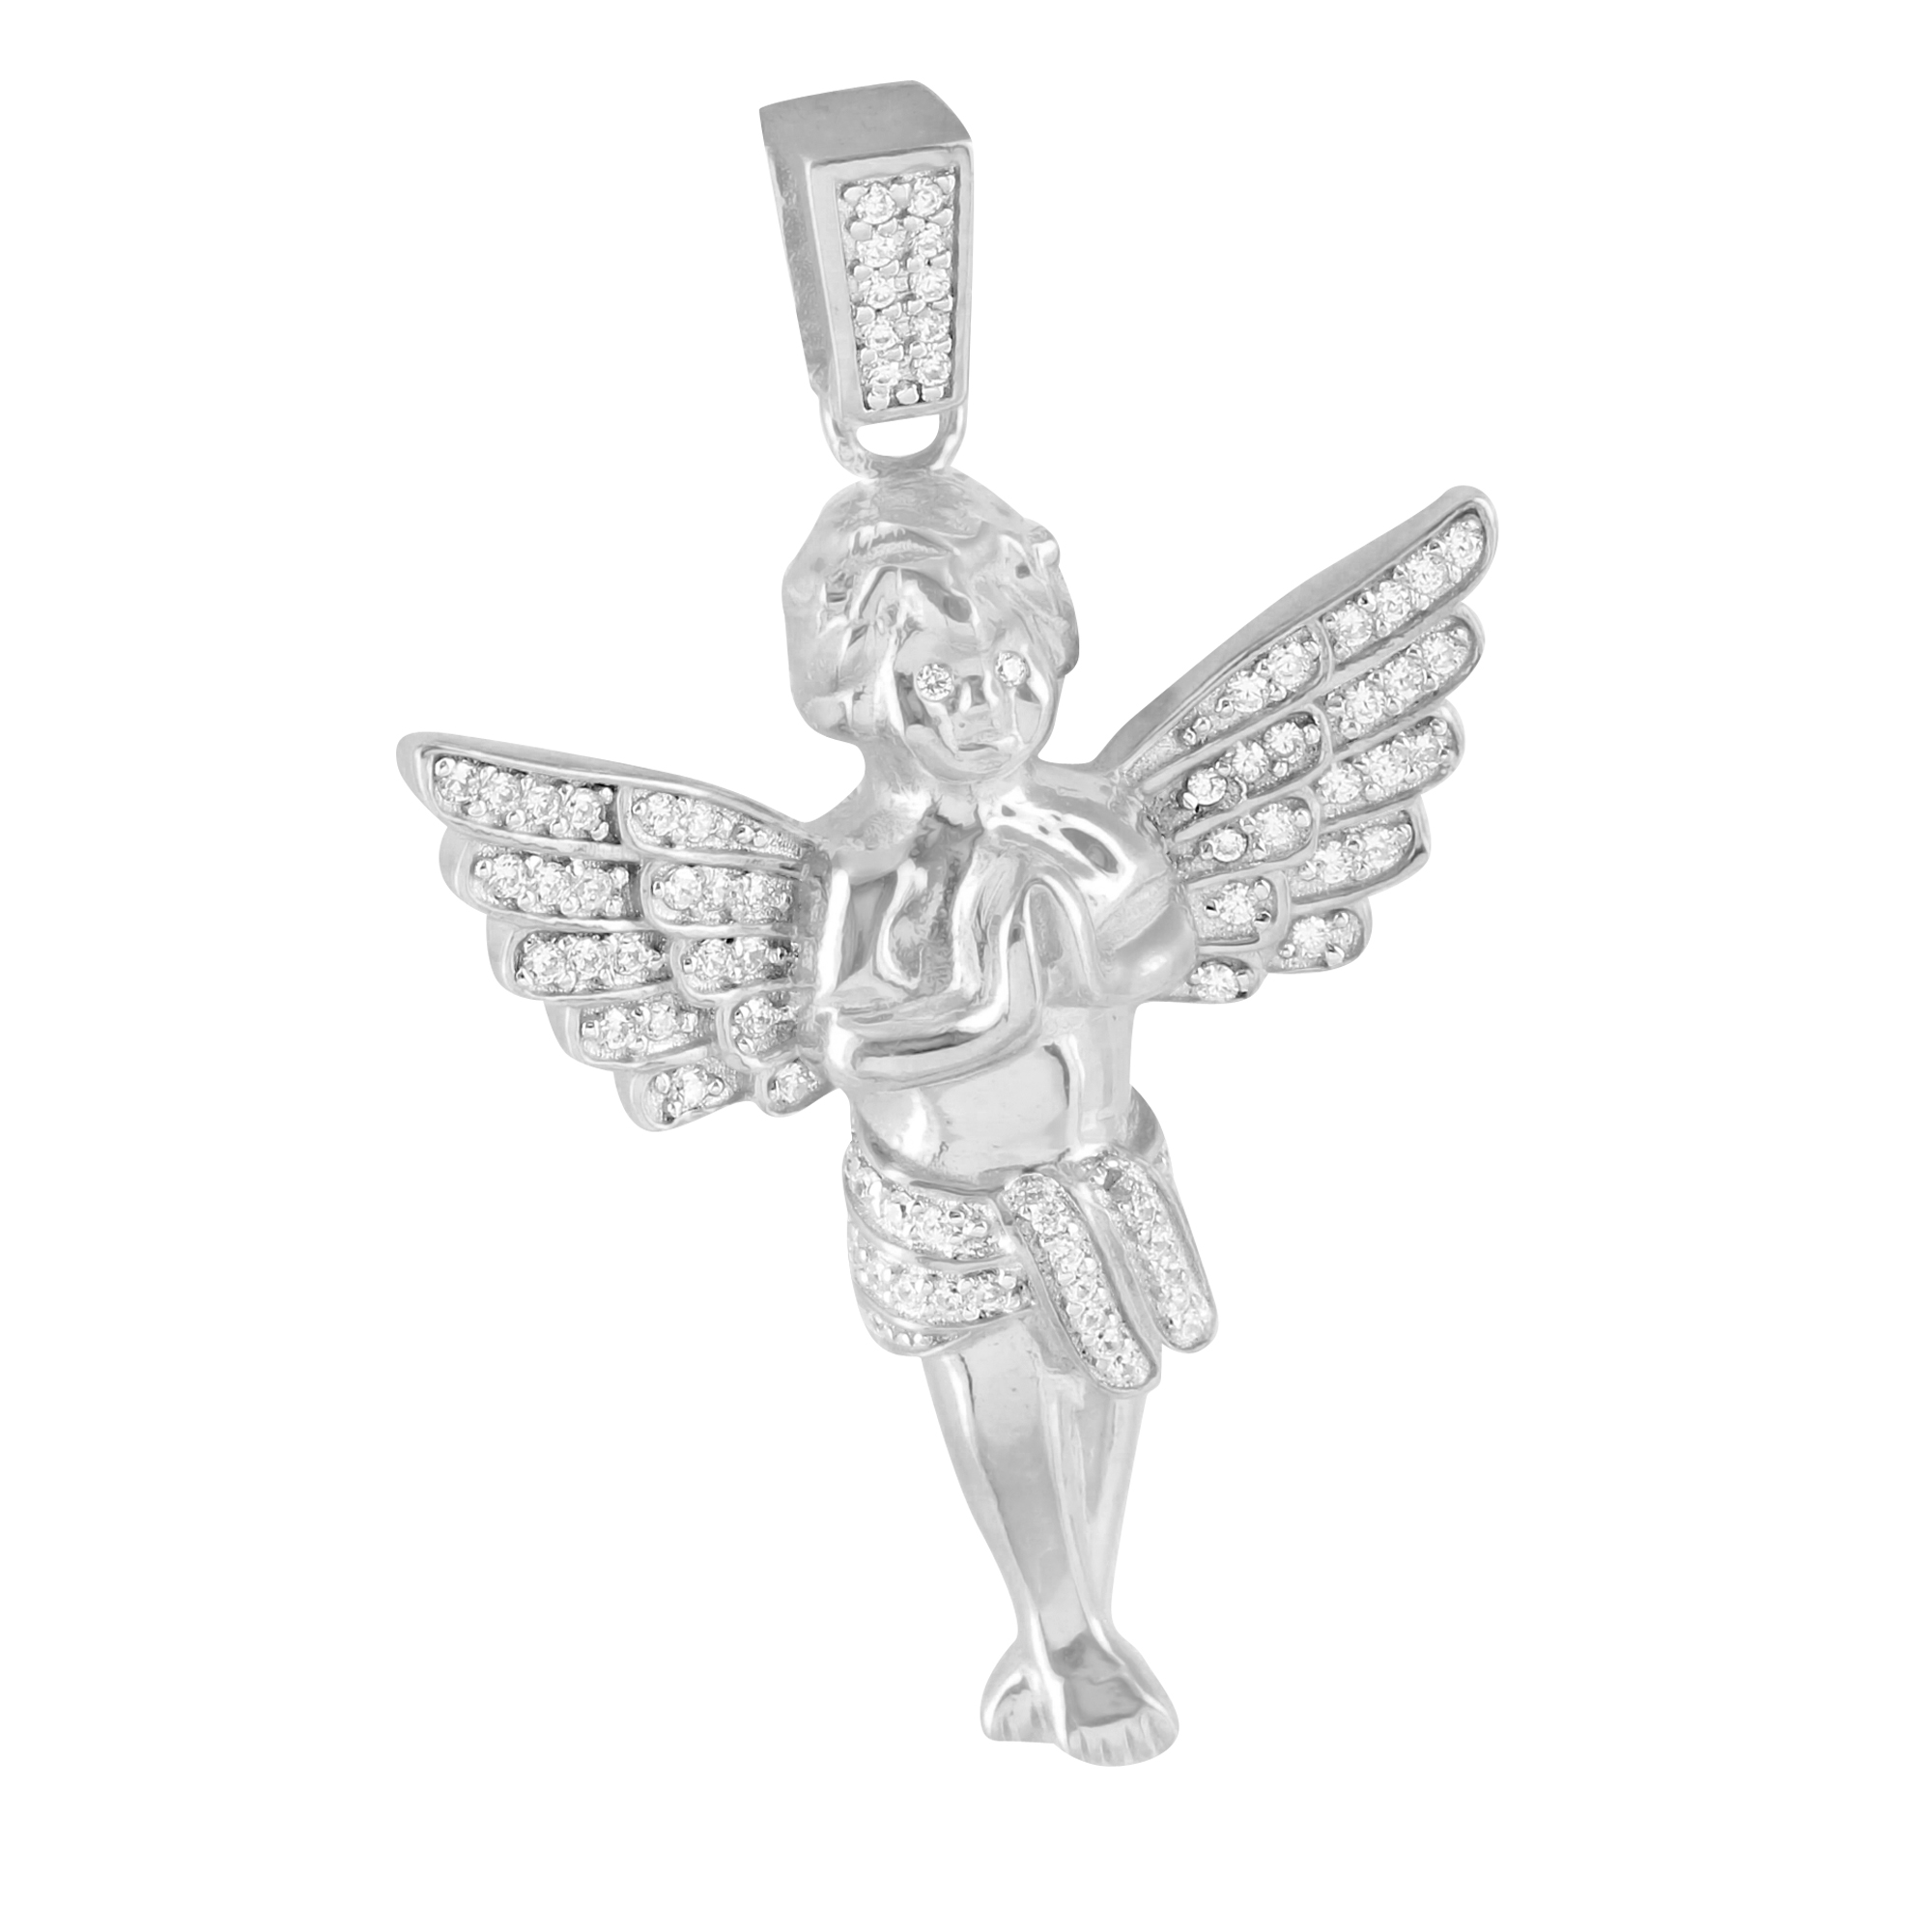 Guardian Praying Angel Pendant 14k White Gold Finish Over 925 Silver Lab Created Cubic Zirconias Hip Hop